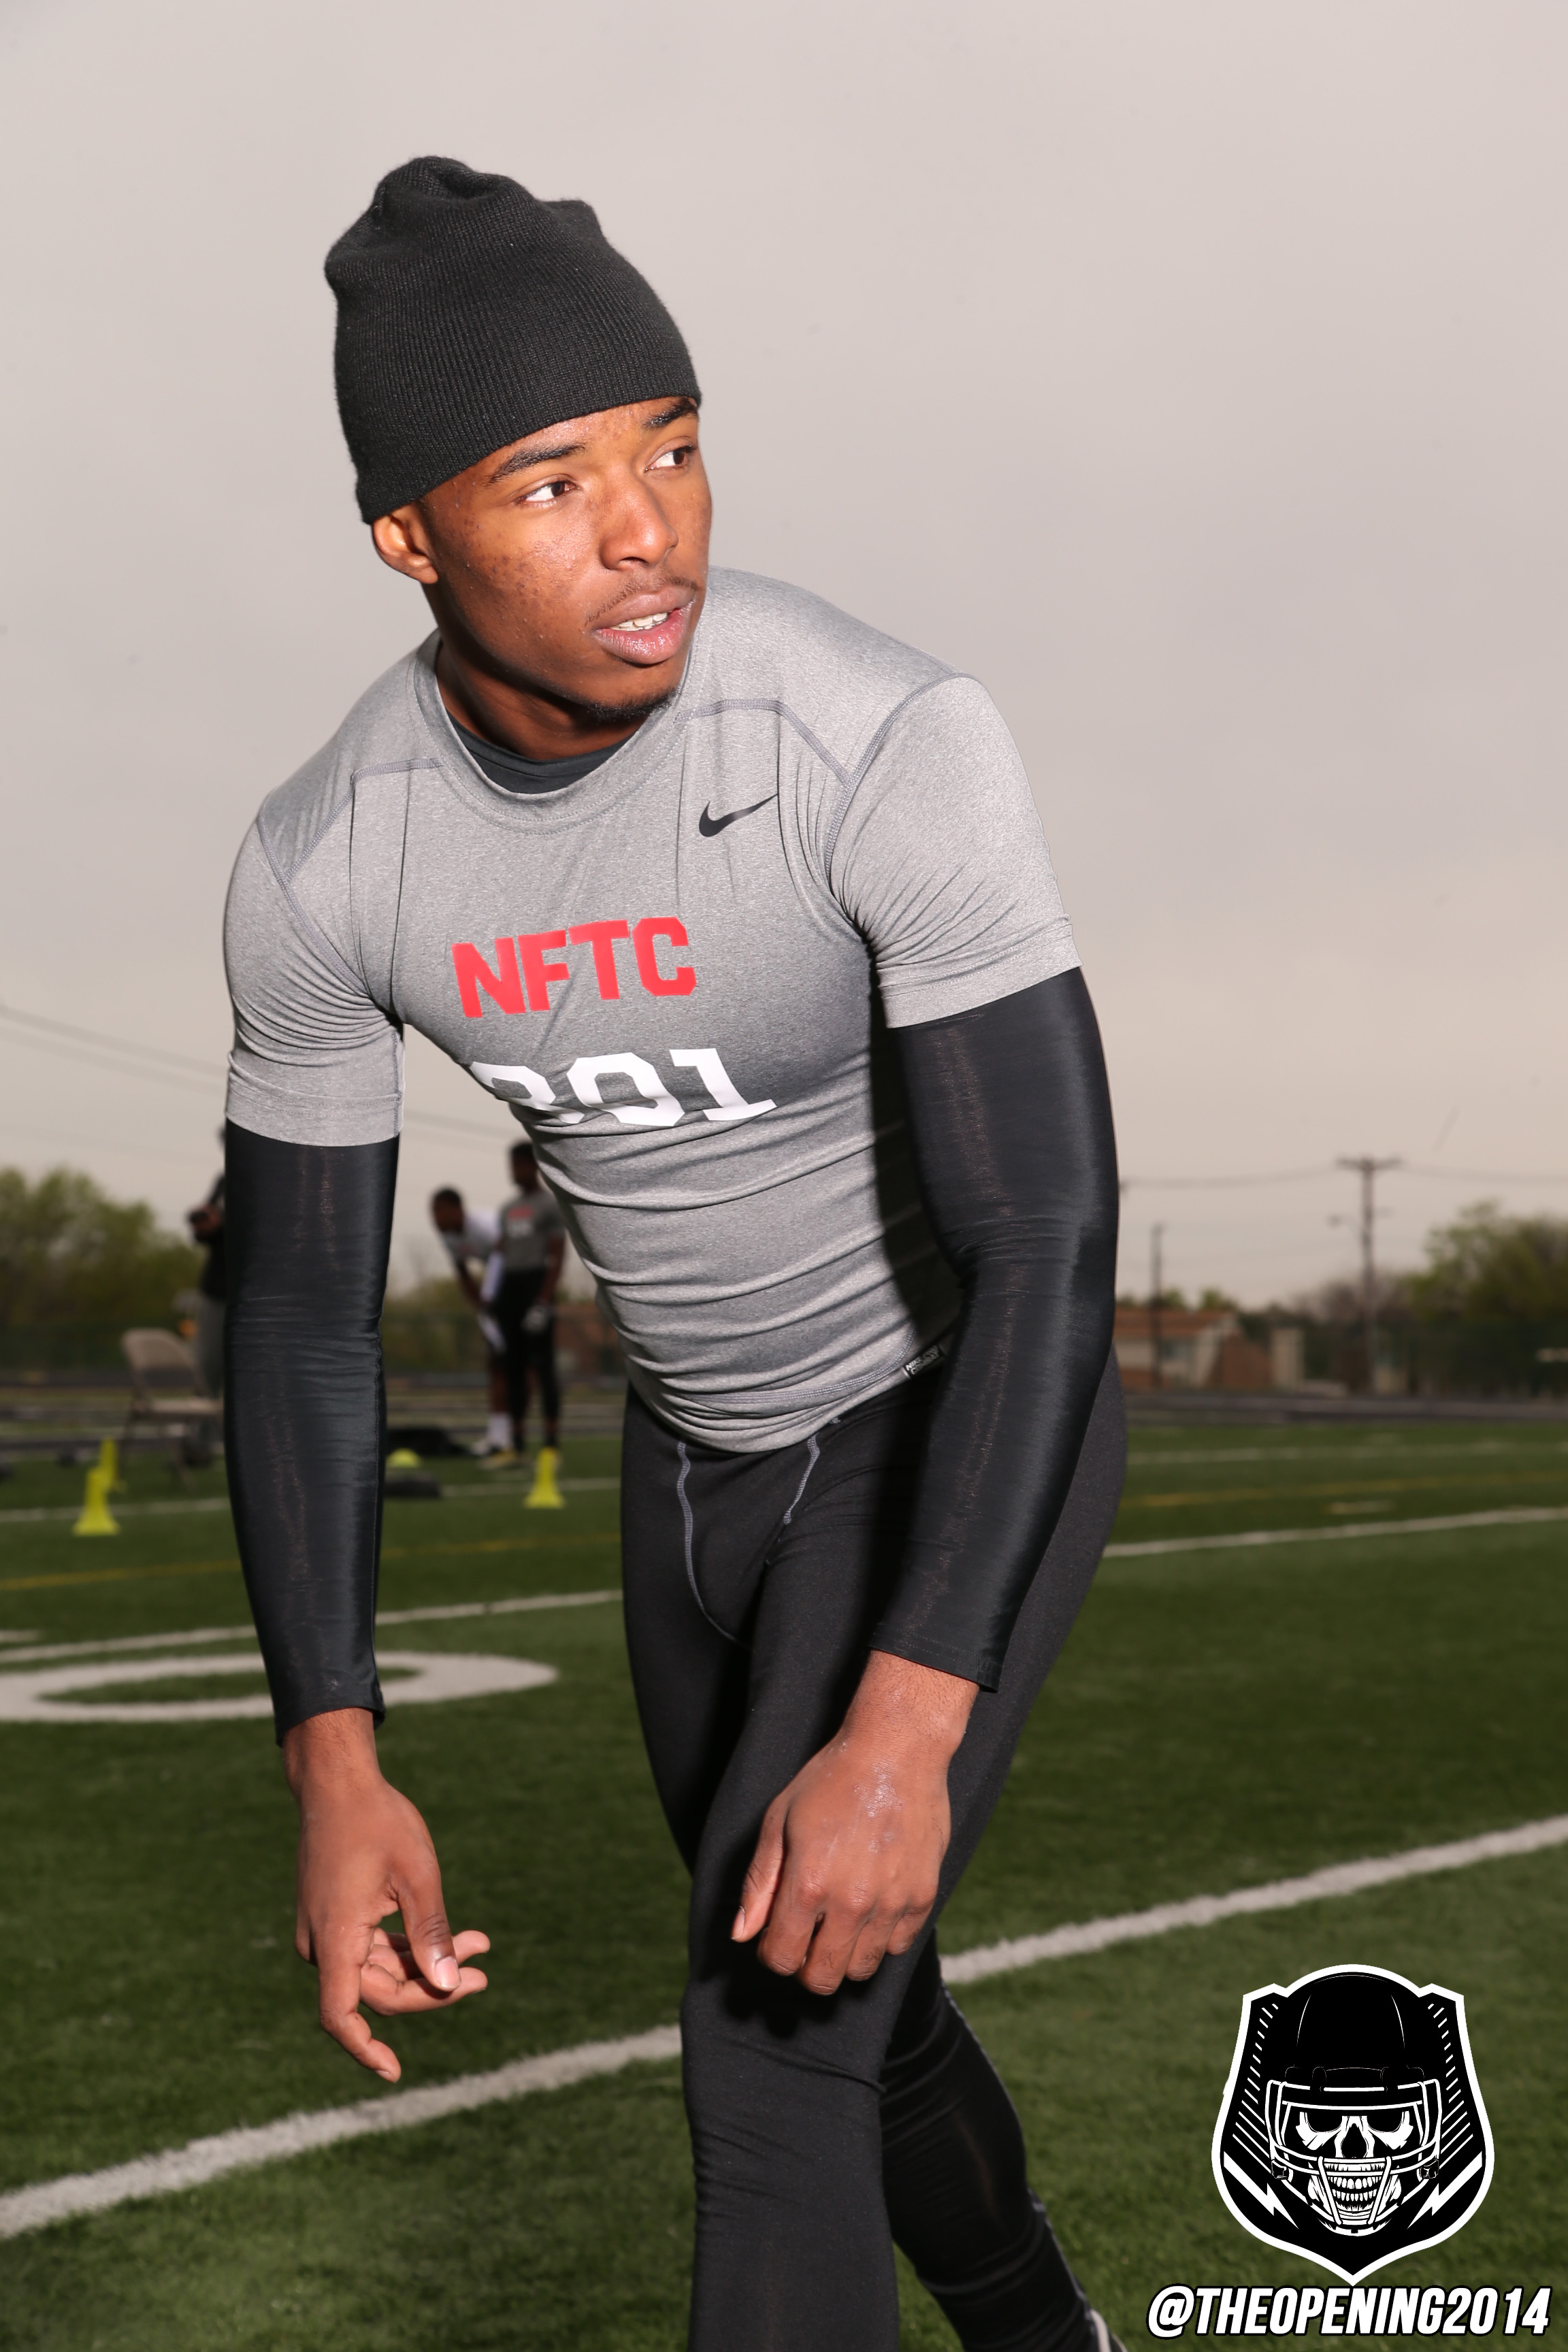 Ryan Newsome at a Nike event